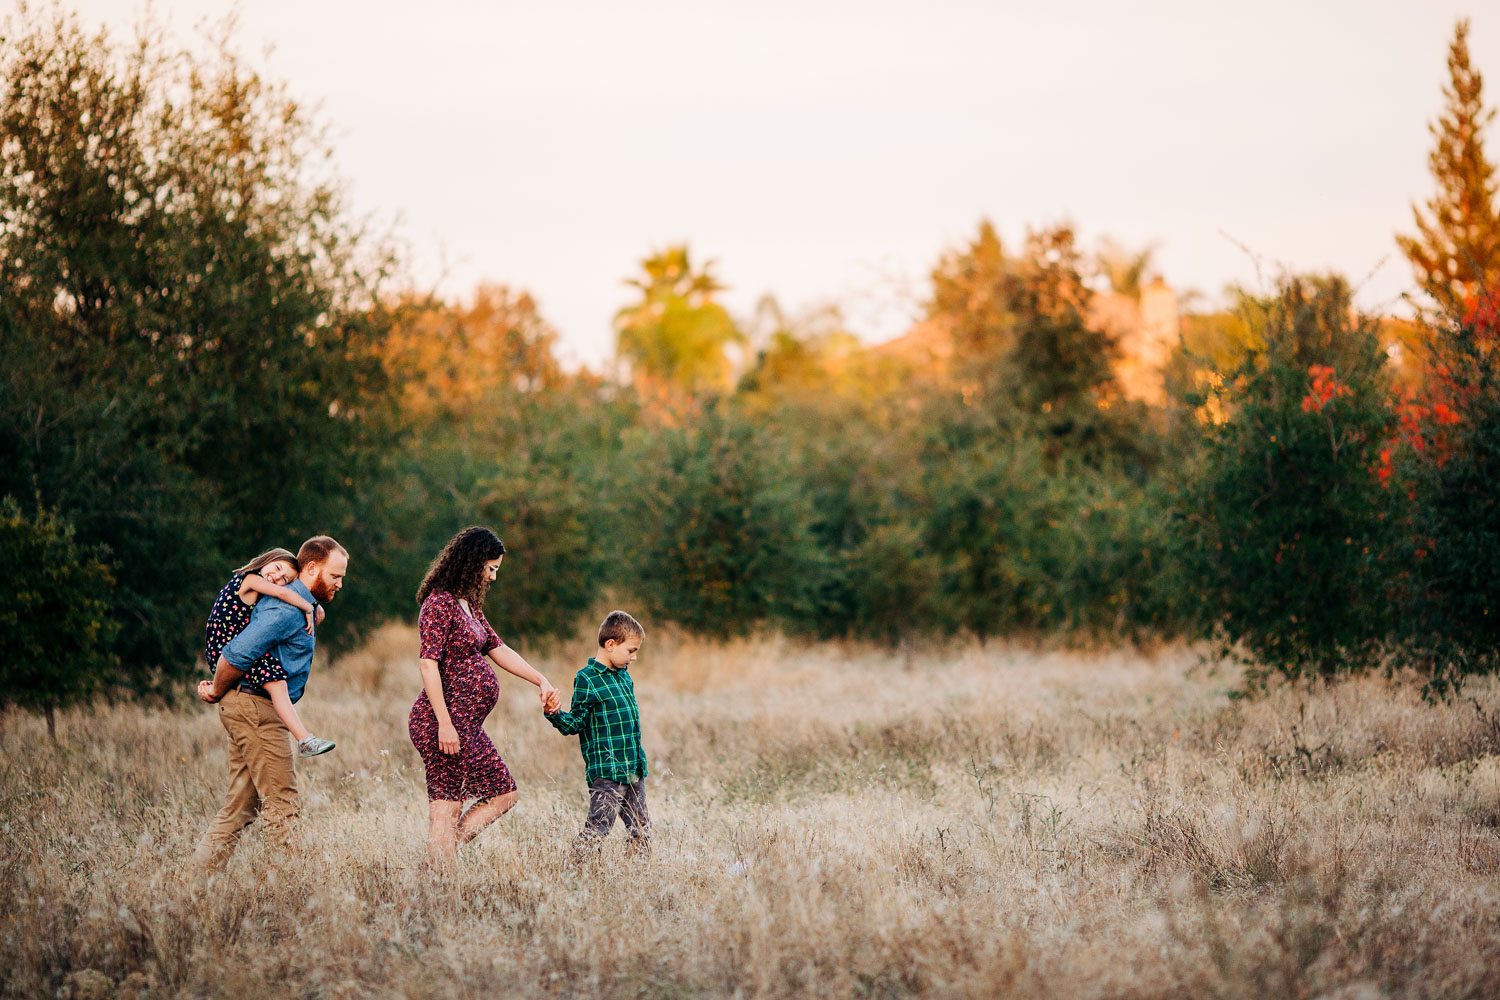 A family of four walks together in a field during a maternity photo session with Amy Wright Photography in Roseville, California.